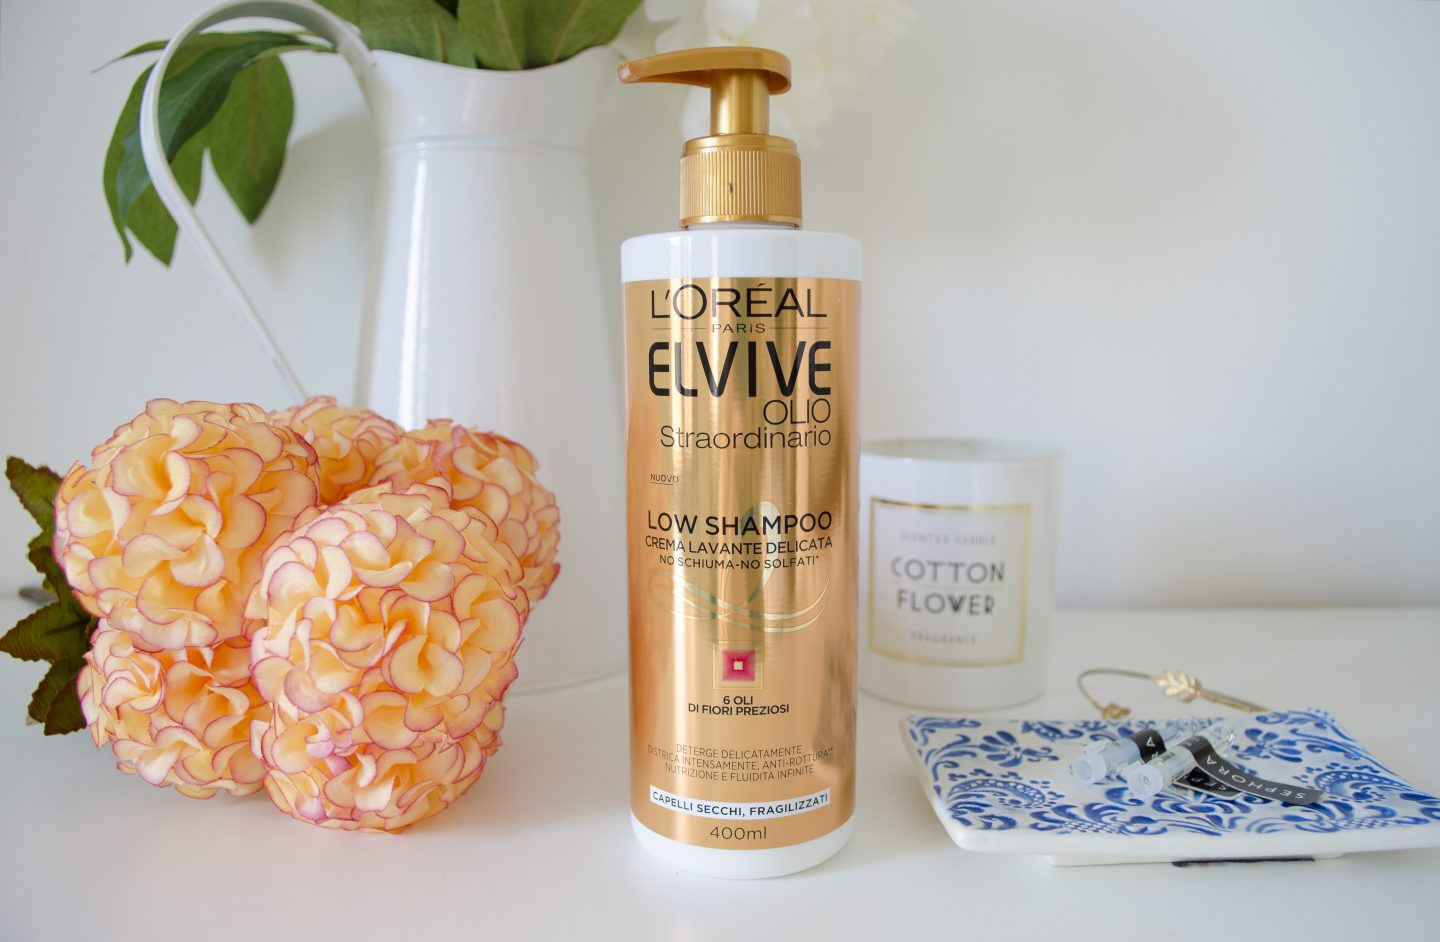 BEAUTY | REVIEW: ELVIVE LOW SHAMPOO BY L'OREAL